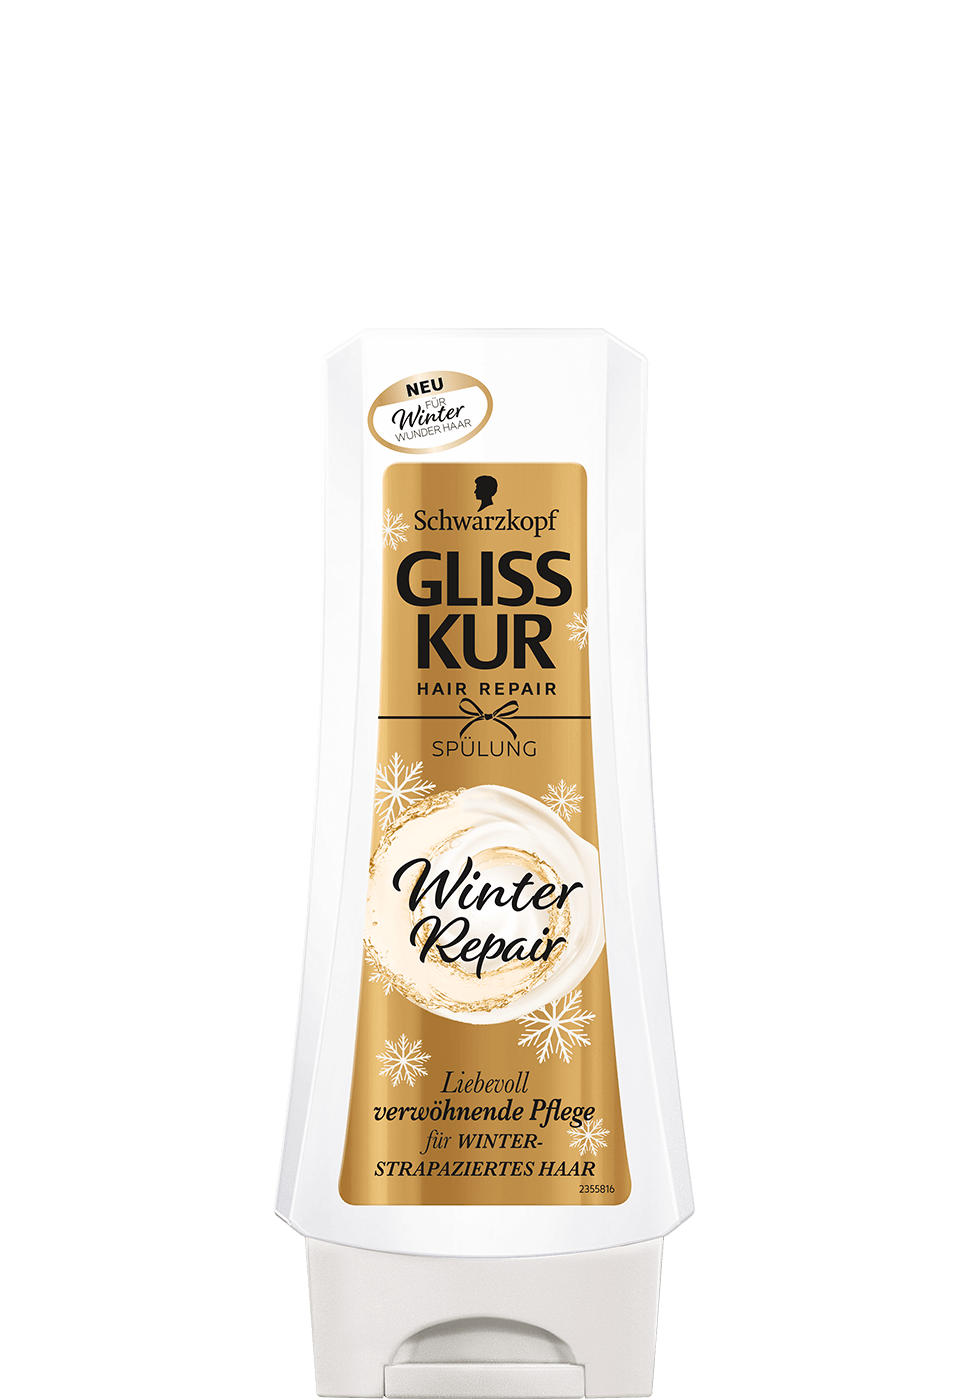 glisskur_ch_winter_repair_spuelung_970x1400